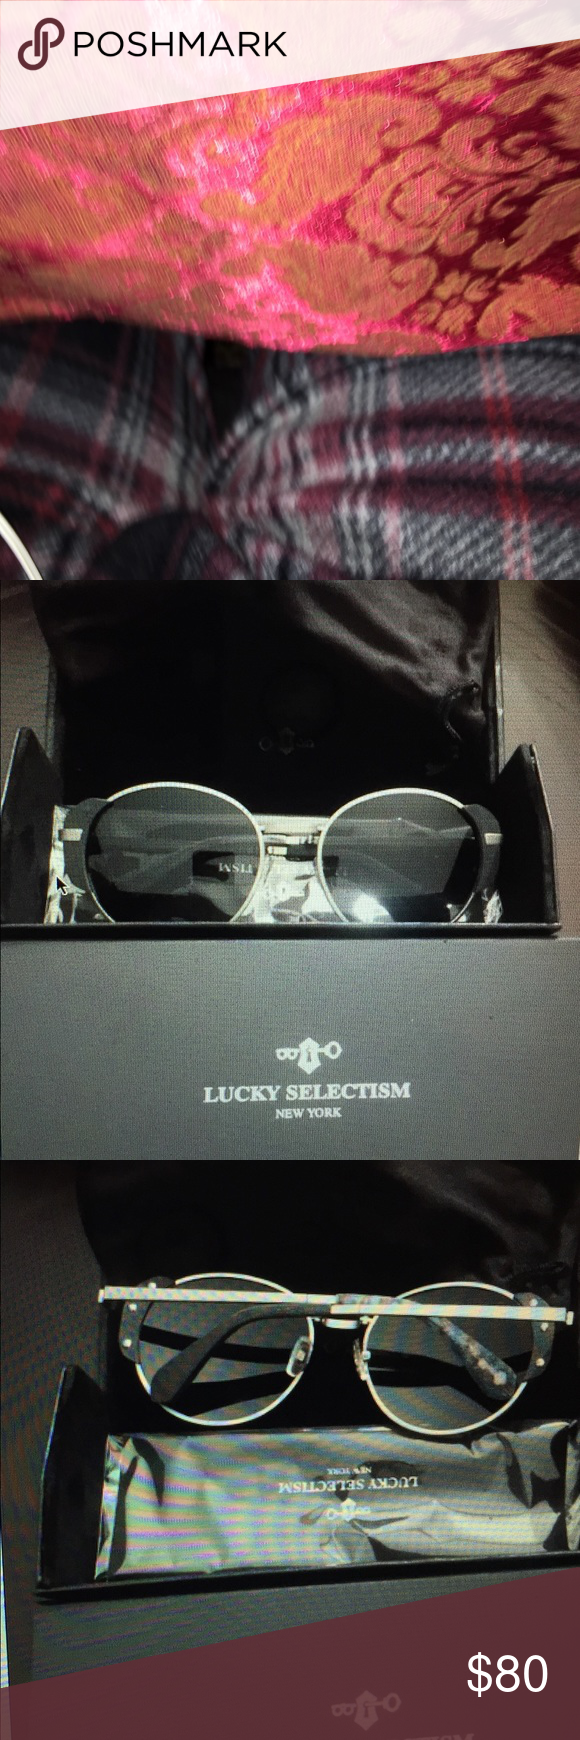 e38b753ef87 Lucky selectism folding round sunglasses Lucky selectism folding round  sunglasses. Never worn before. Still has the plastic on the arm. rayban  Accessories ...